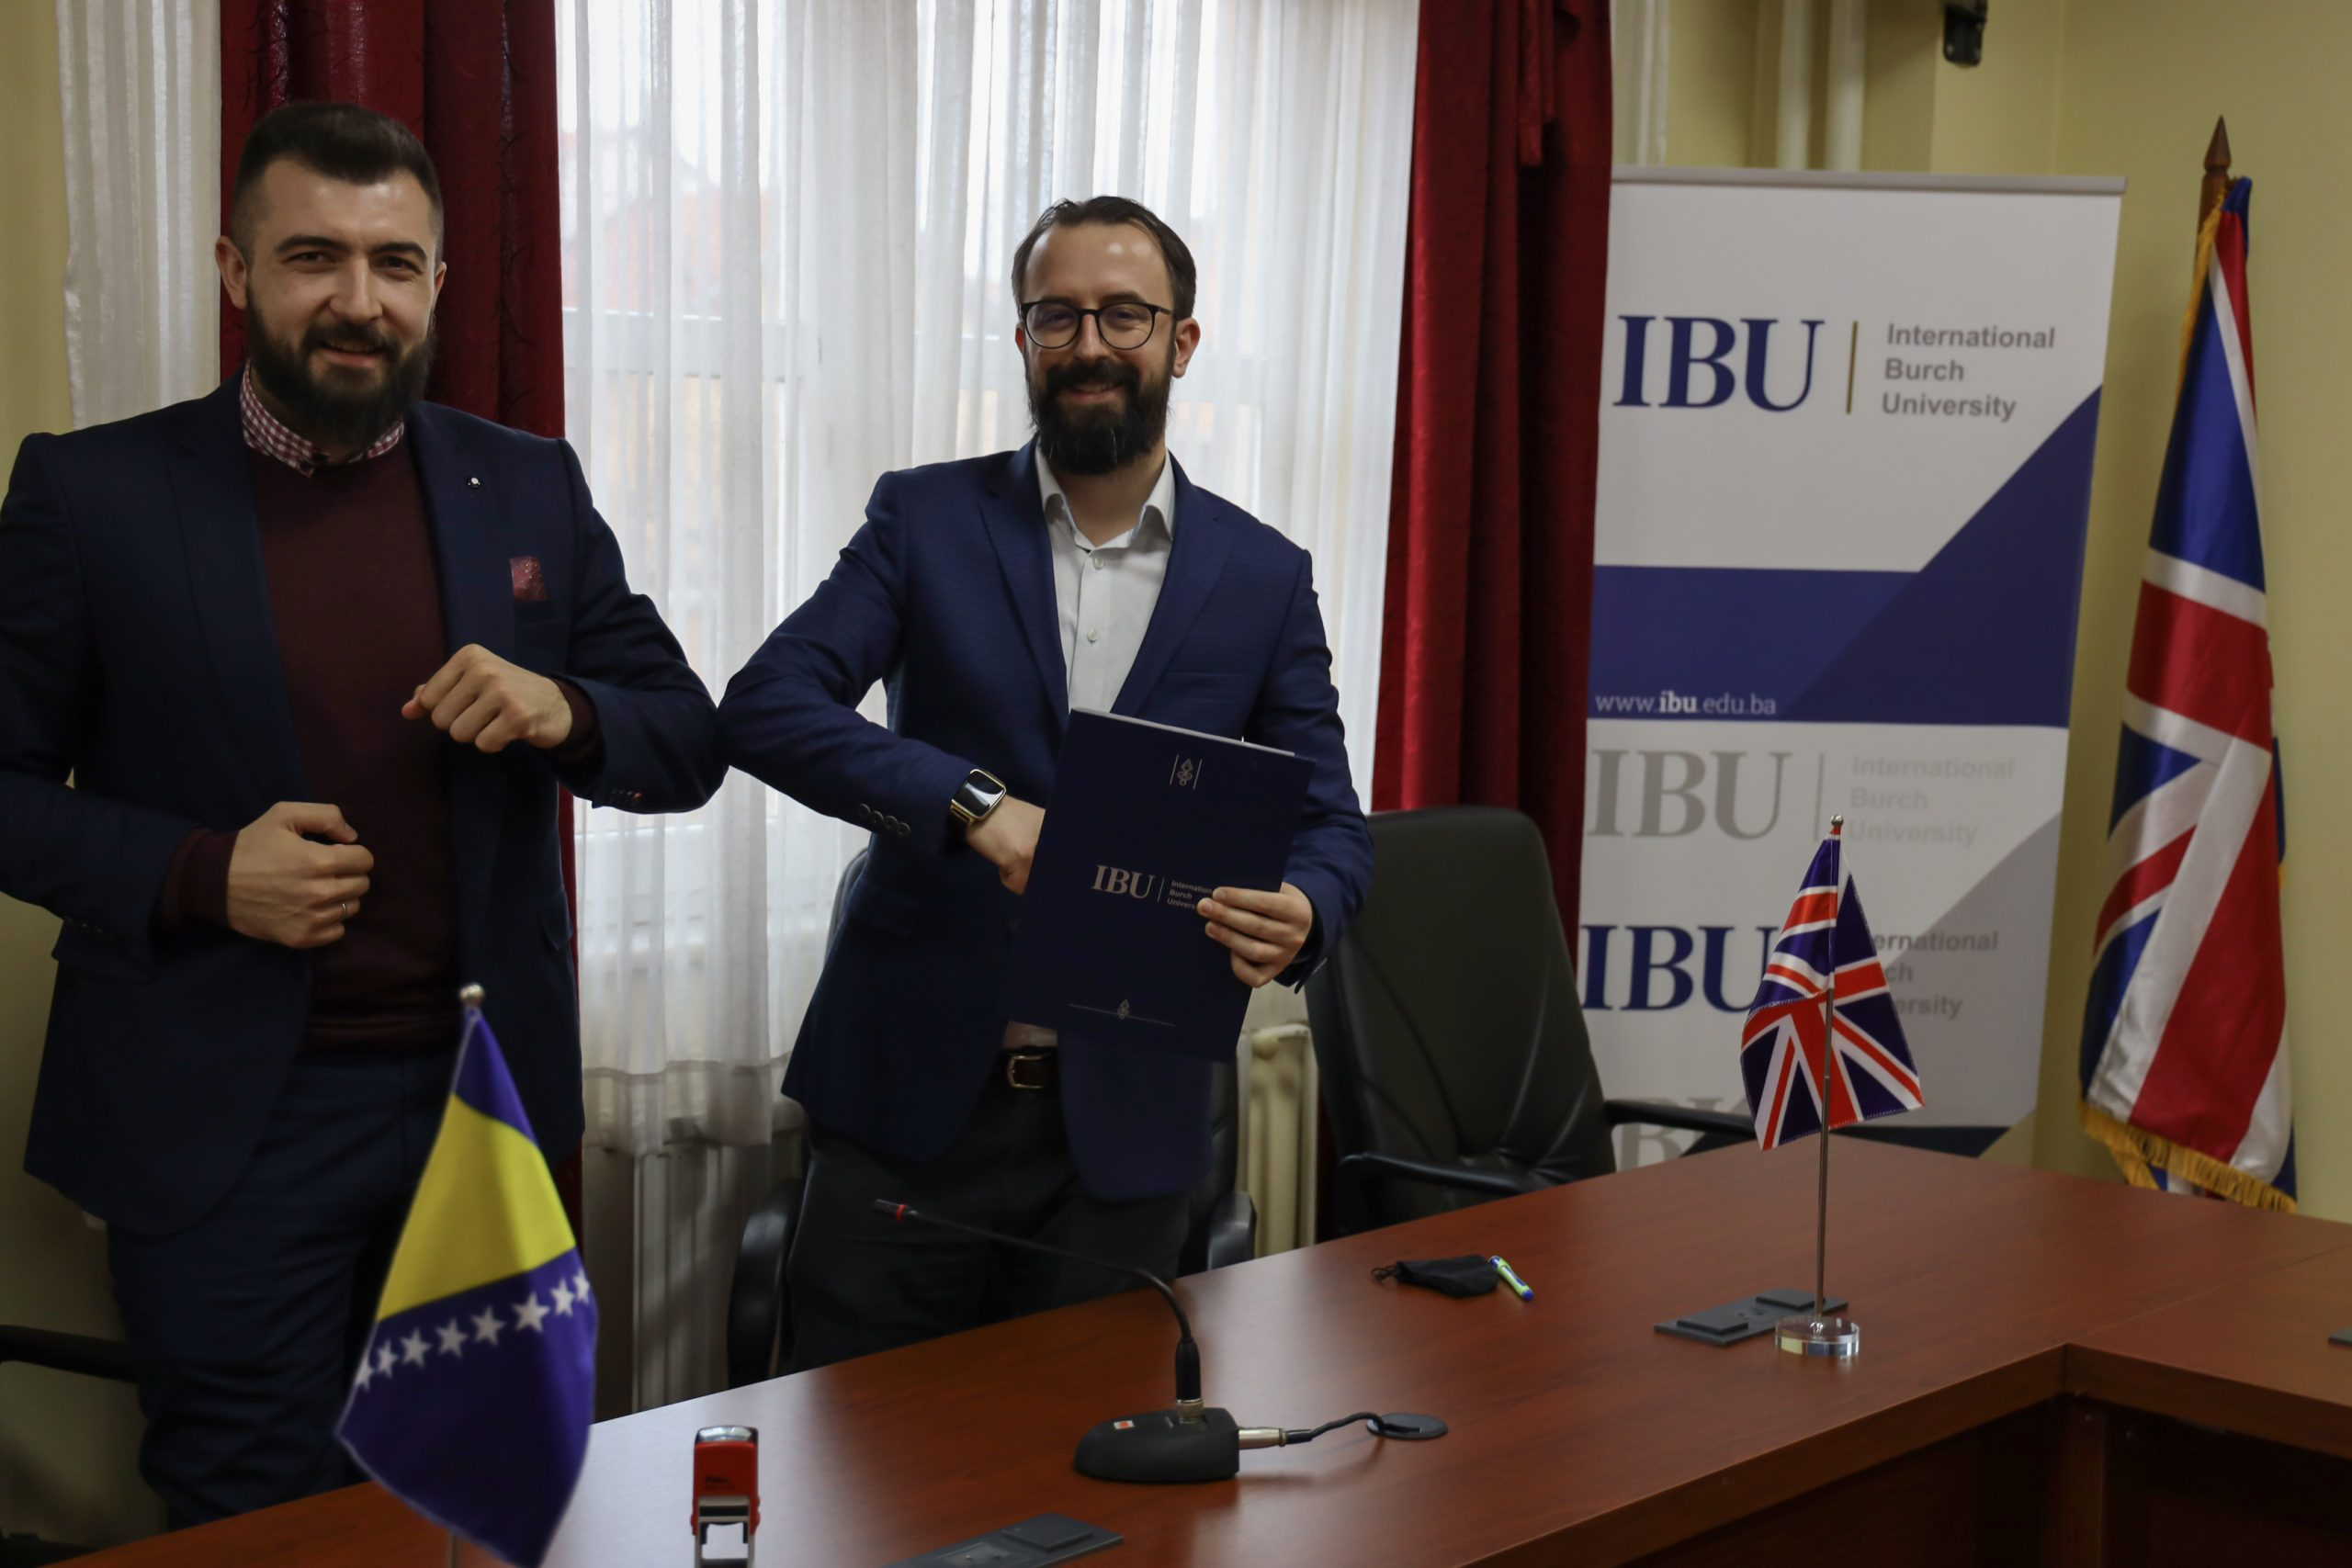 BRAVO signed a Memorandum of Understanding with International Burch University